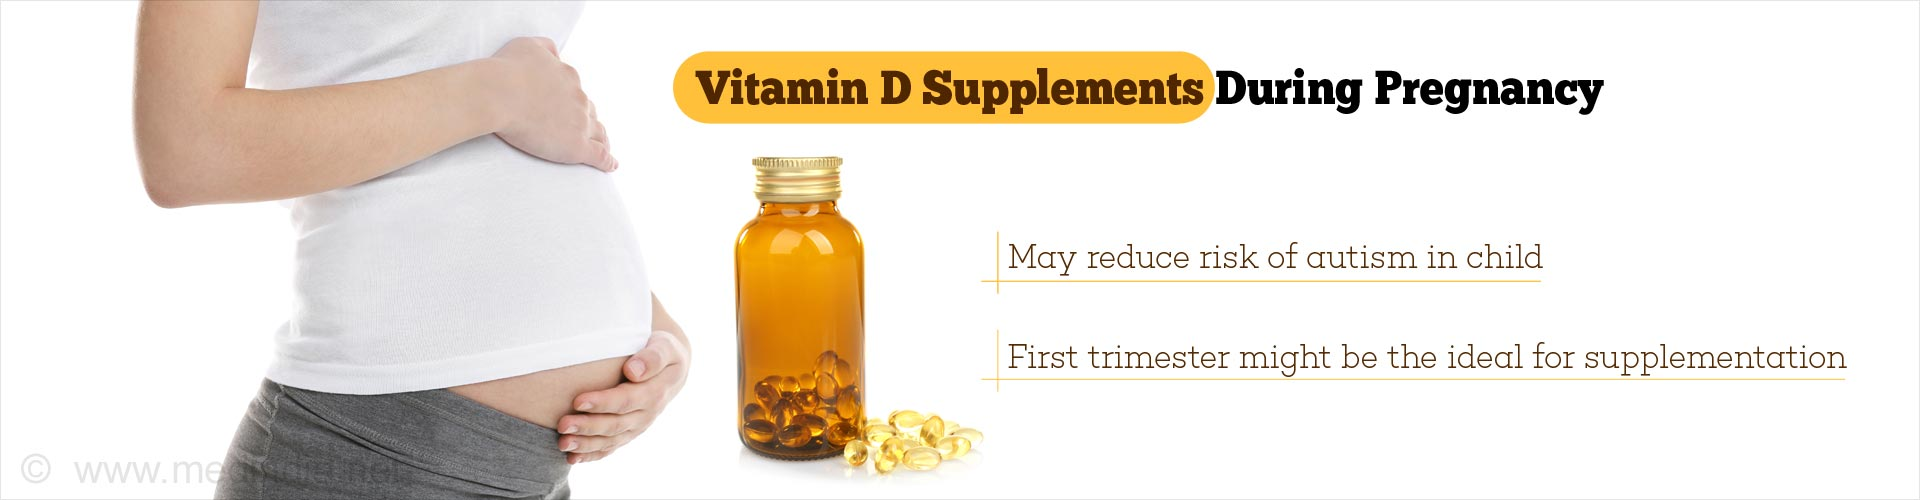 Supplementing Vitamin D During Pregnancy May Reduce Autism Risk in Fetus